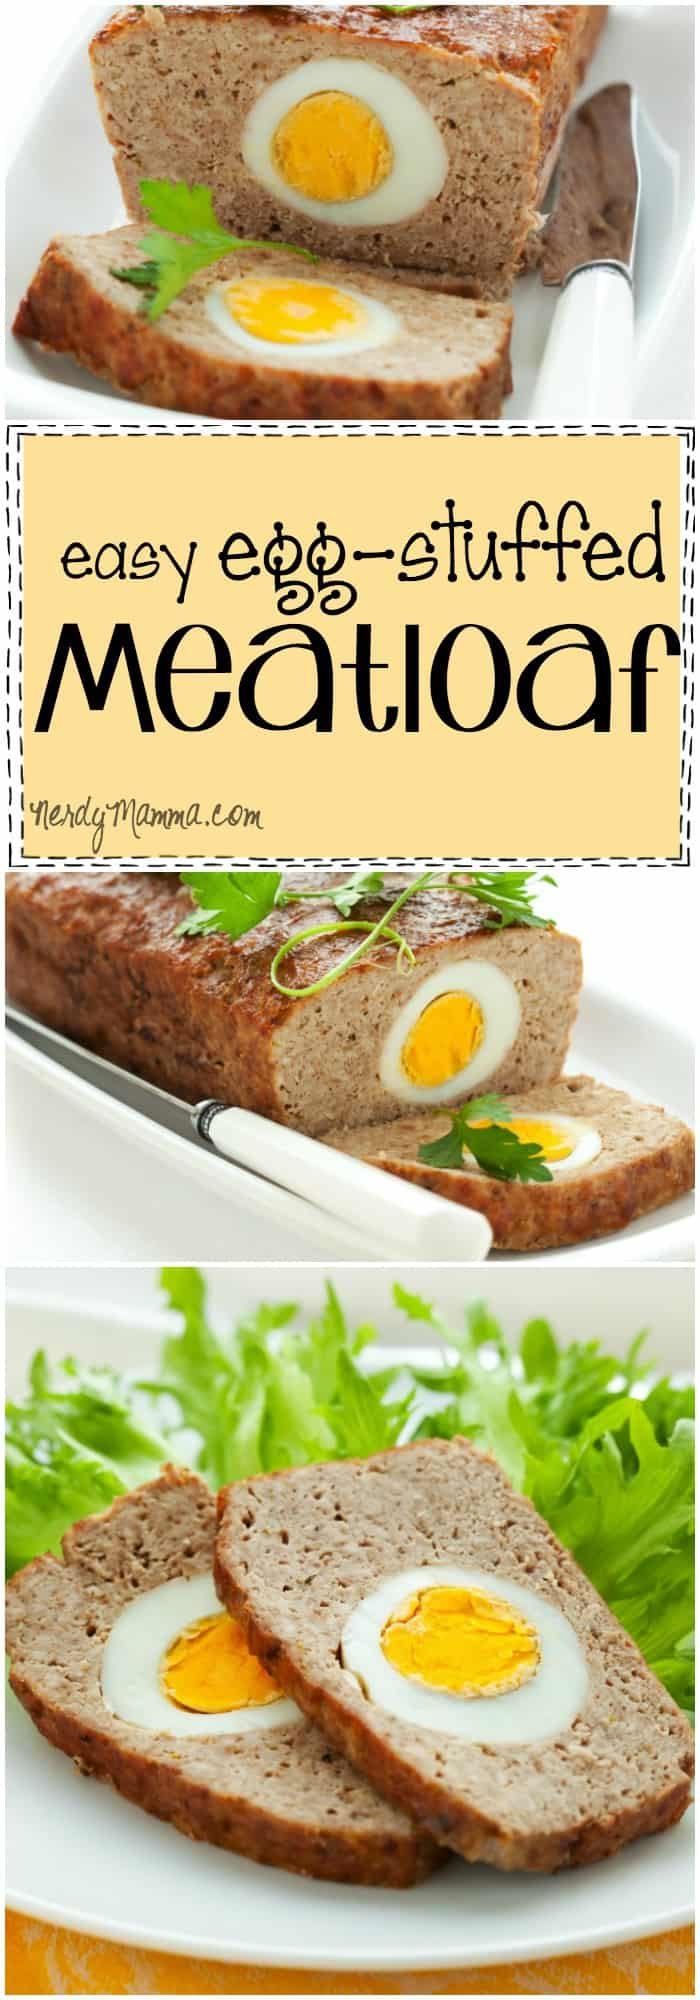 This recipe for egg-stuffed meatloaf is kinda crazy. But really cool--what an awesome twist on the typical meatloaf recipe! I love it!